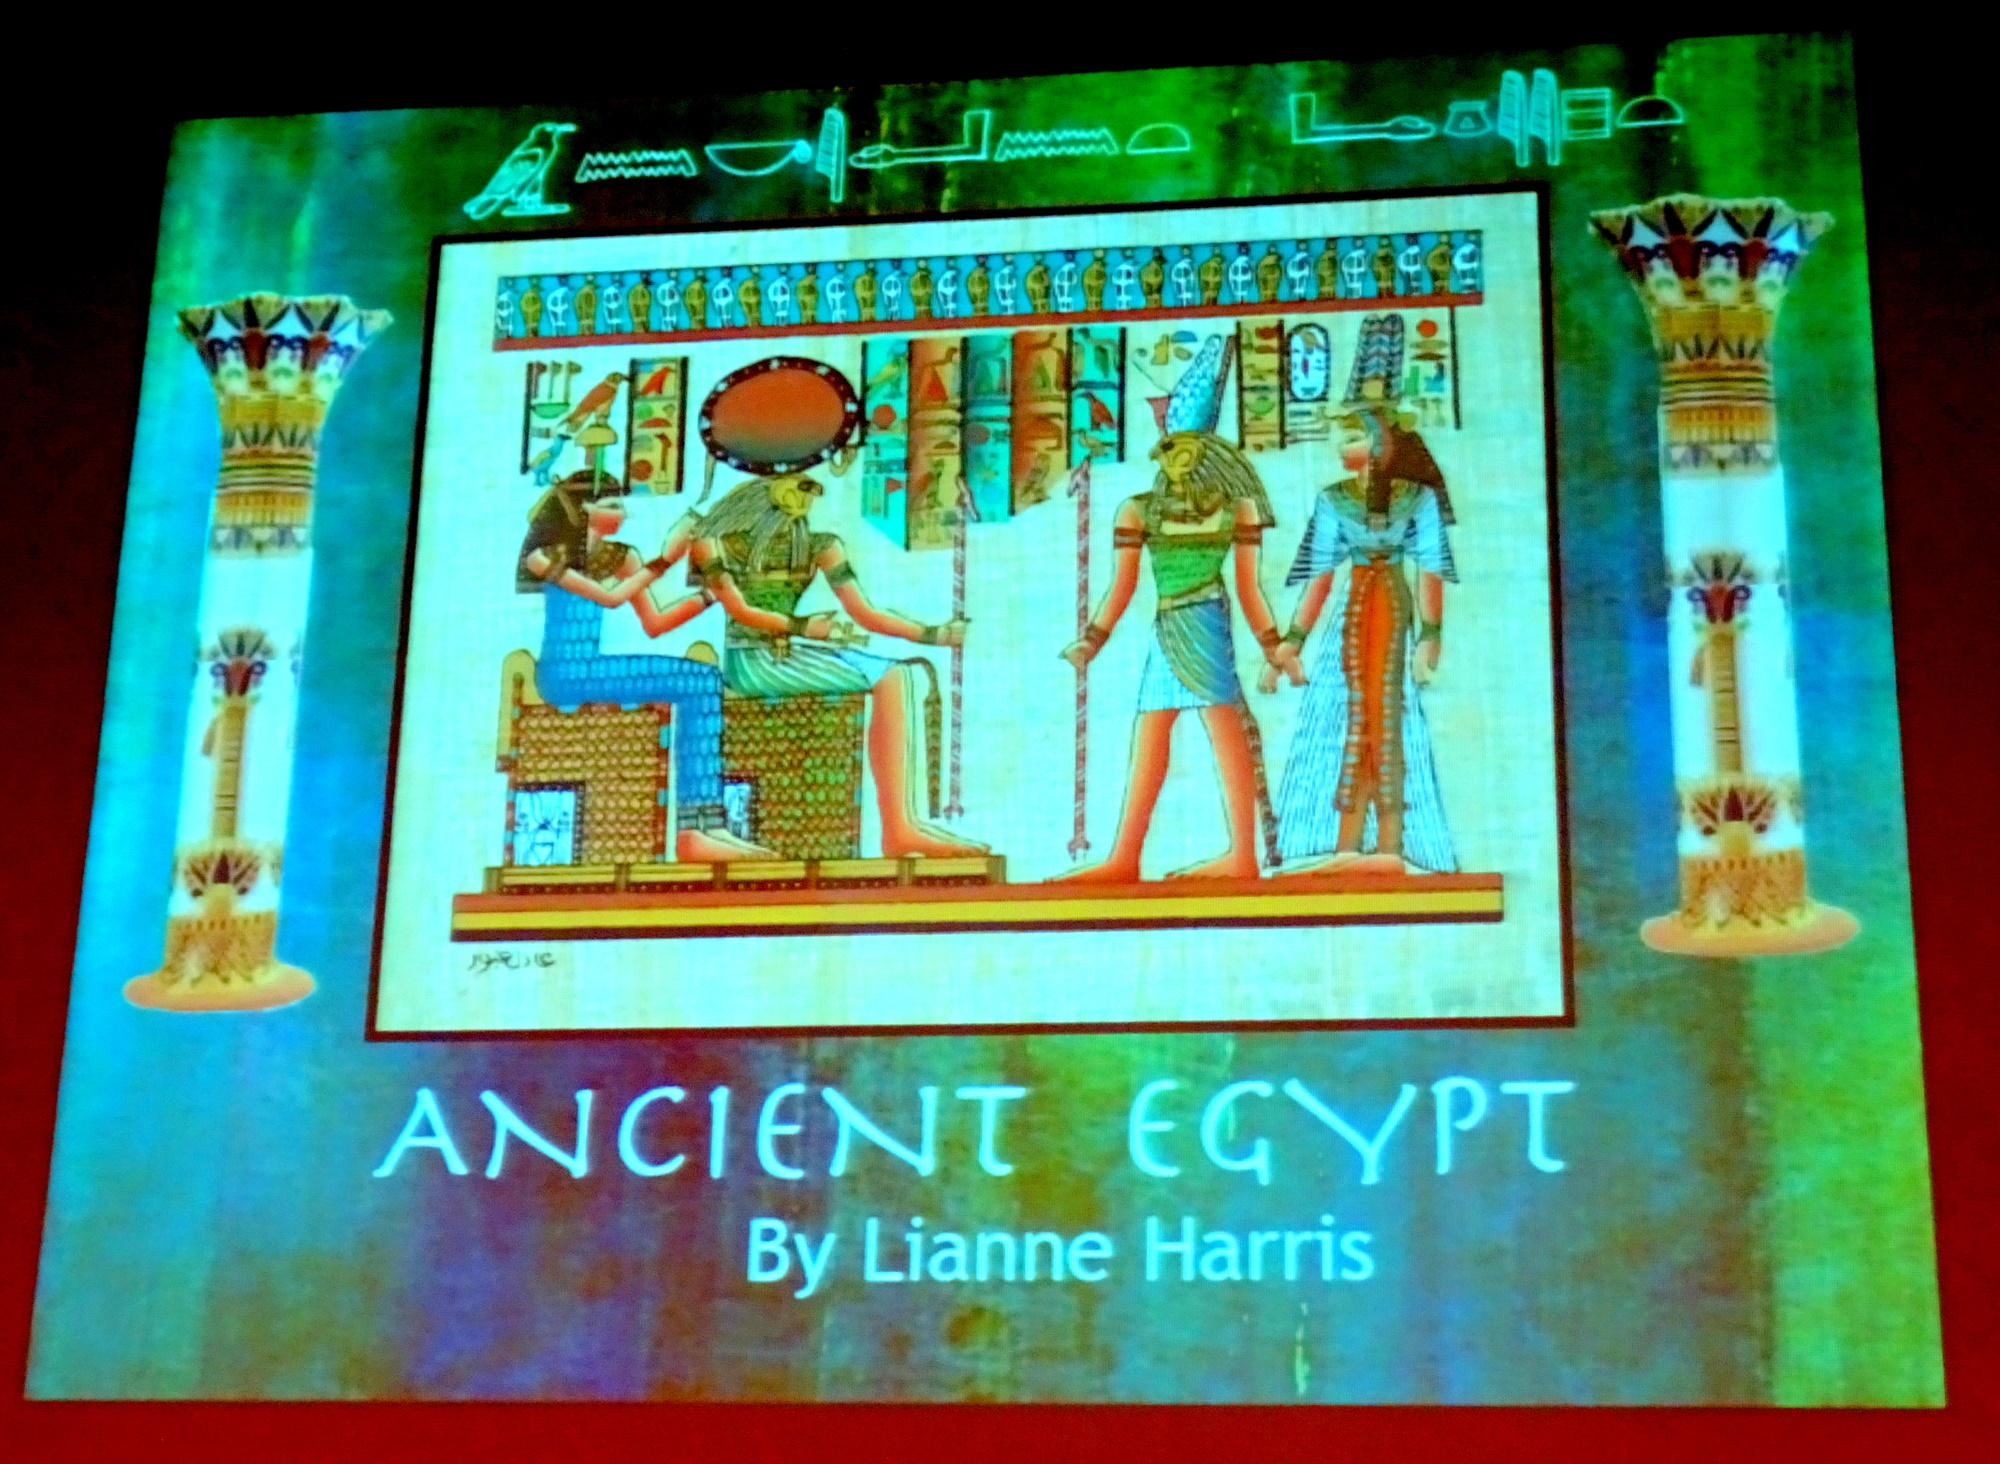 Ancient Egypt by Lianne Harris at VIVA Mississauga 24 Feb 2020